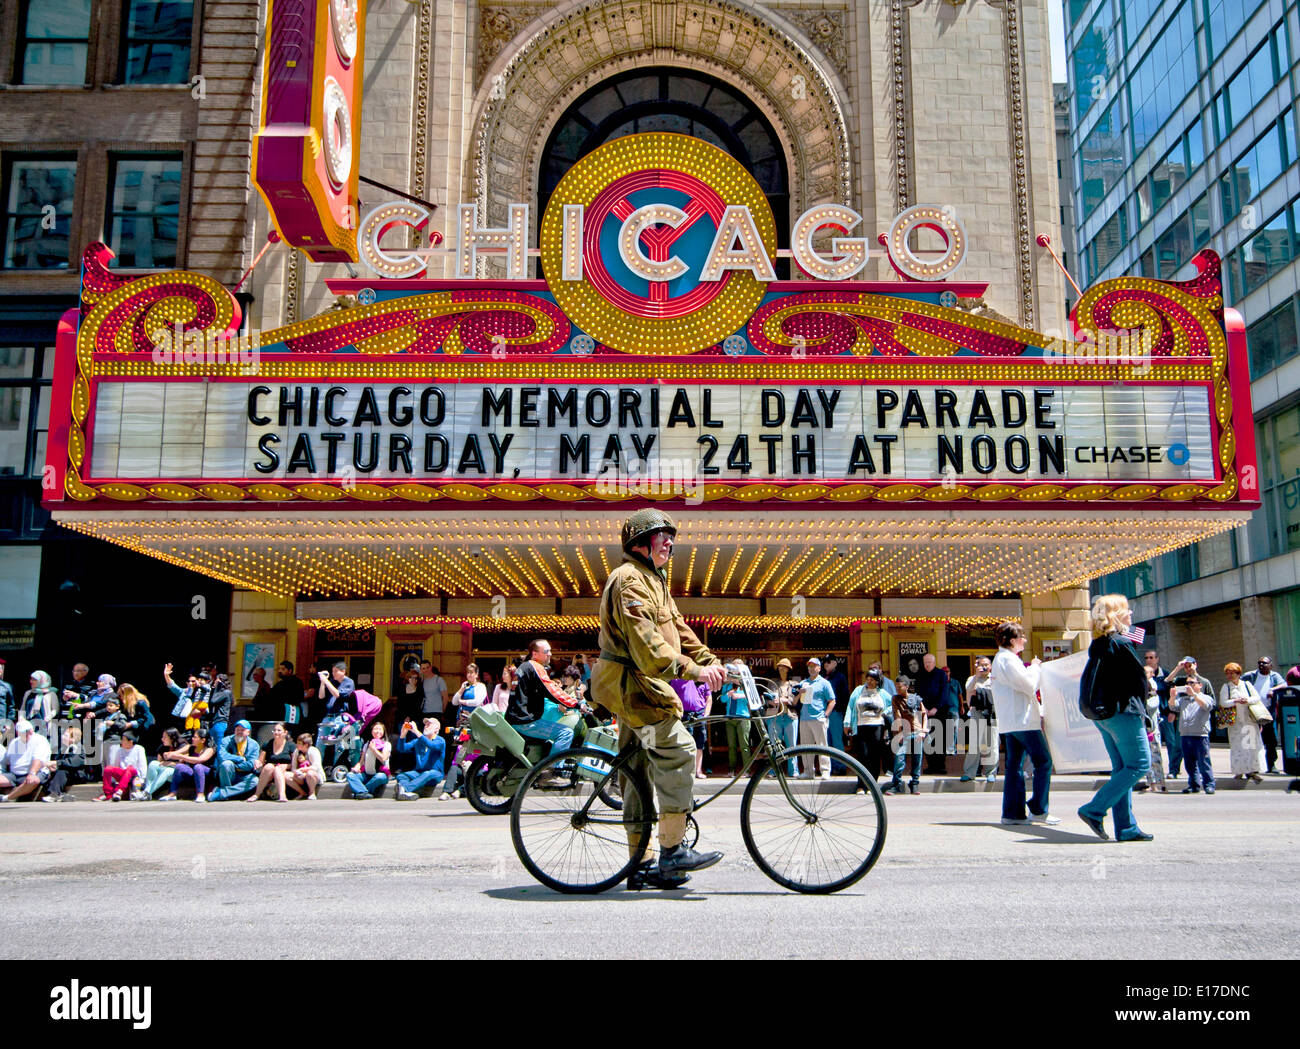 Eine Veteran im zweiten Weltkrieg einheitliche fährt Fahrrad vorbei Chicago Theatre während einer Memorial Day Parade, State Street 24. Mai 2014 in Chicago, Illinois. Stockbild